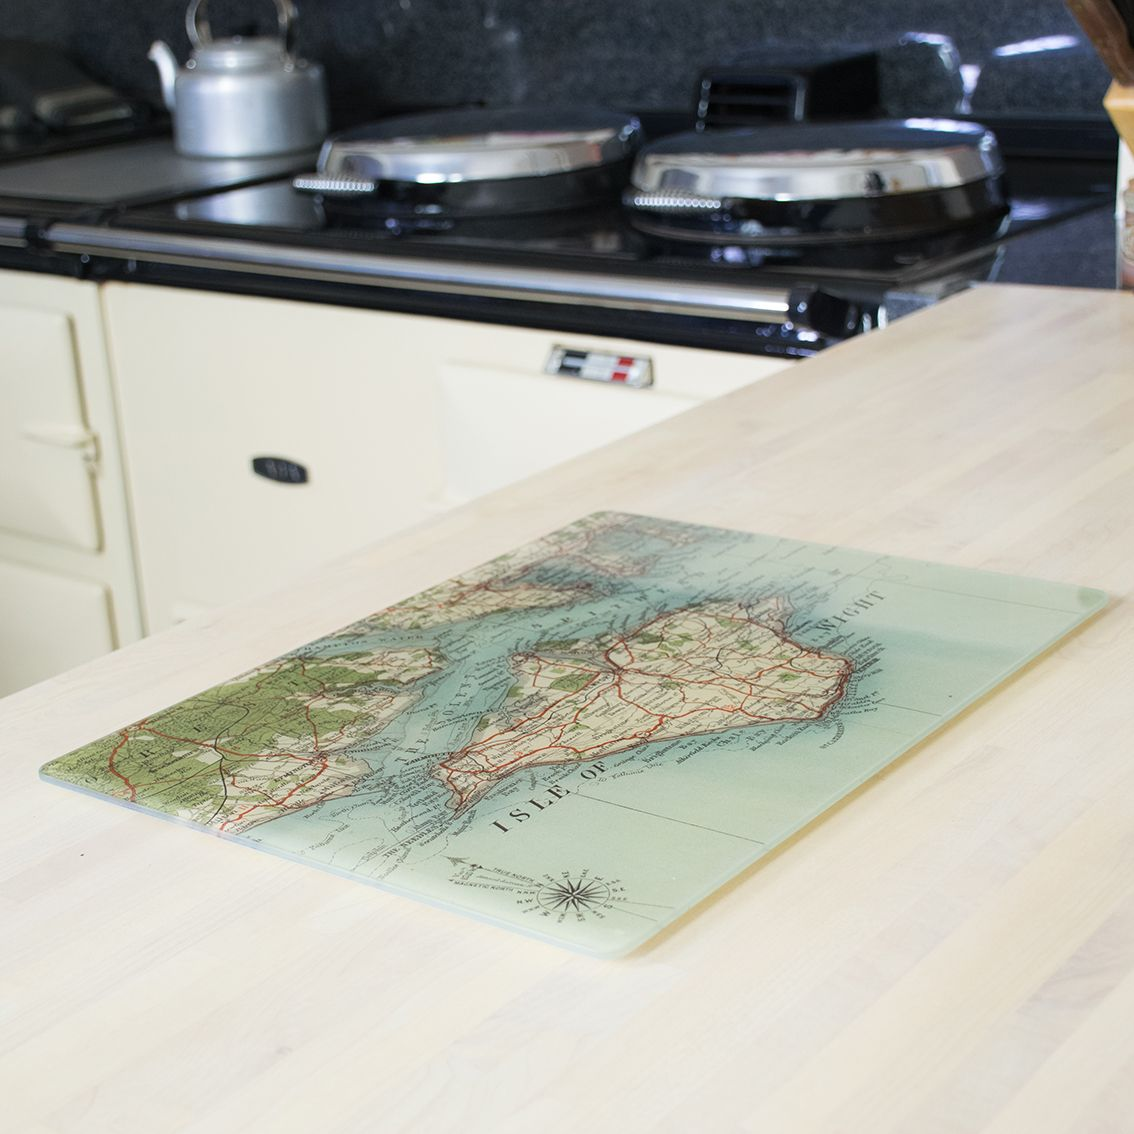 Our Heatproof Glass Worktop Saver Is A Unique Addition To Any